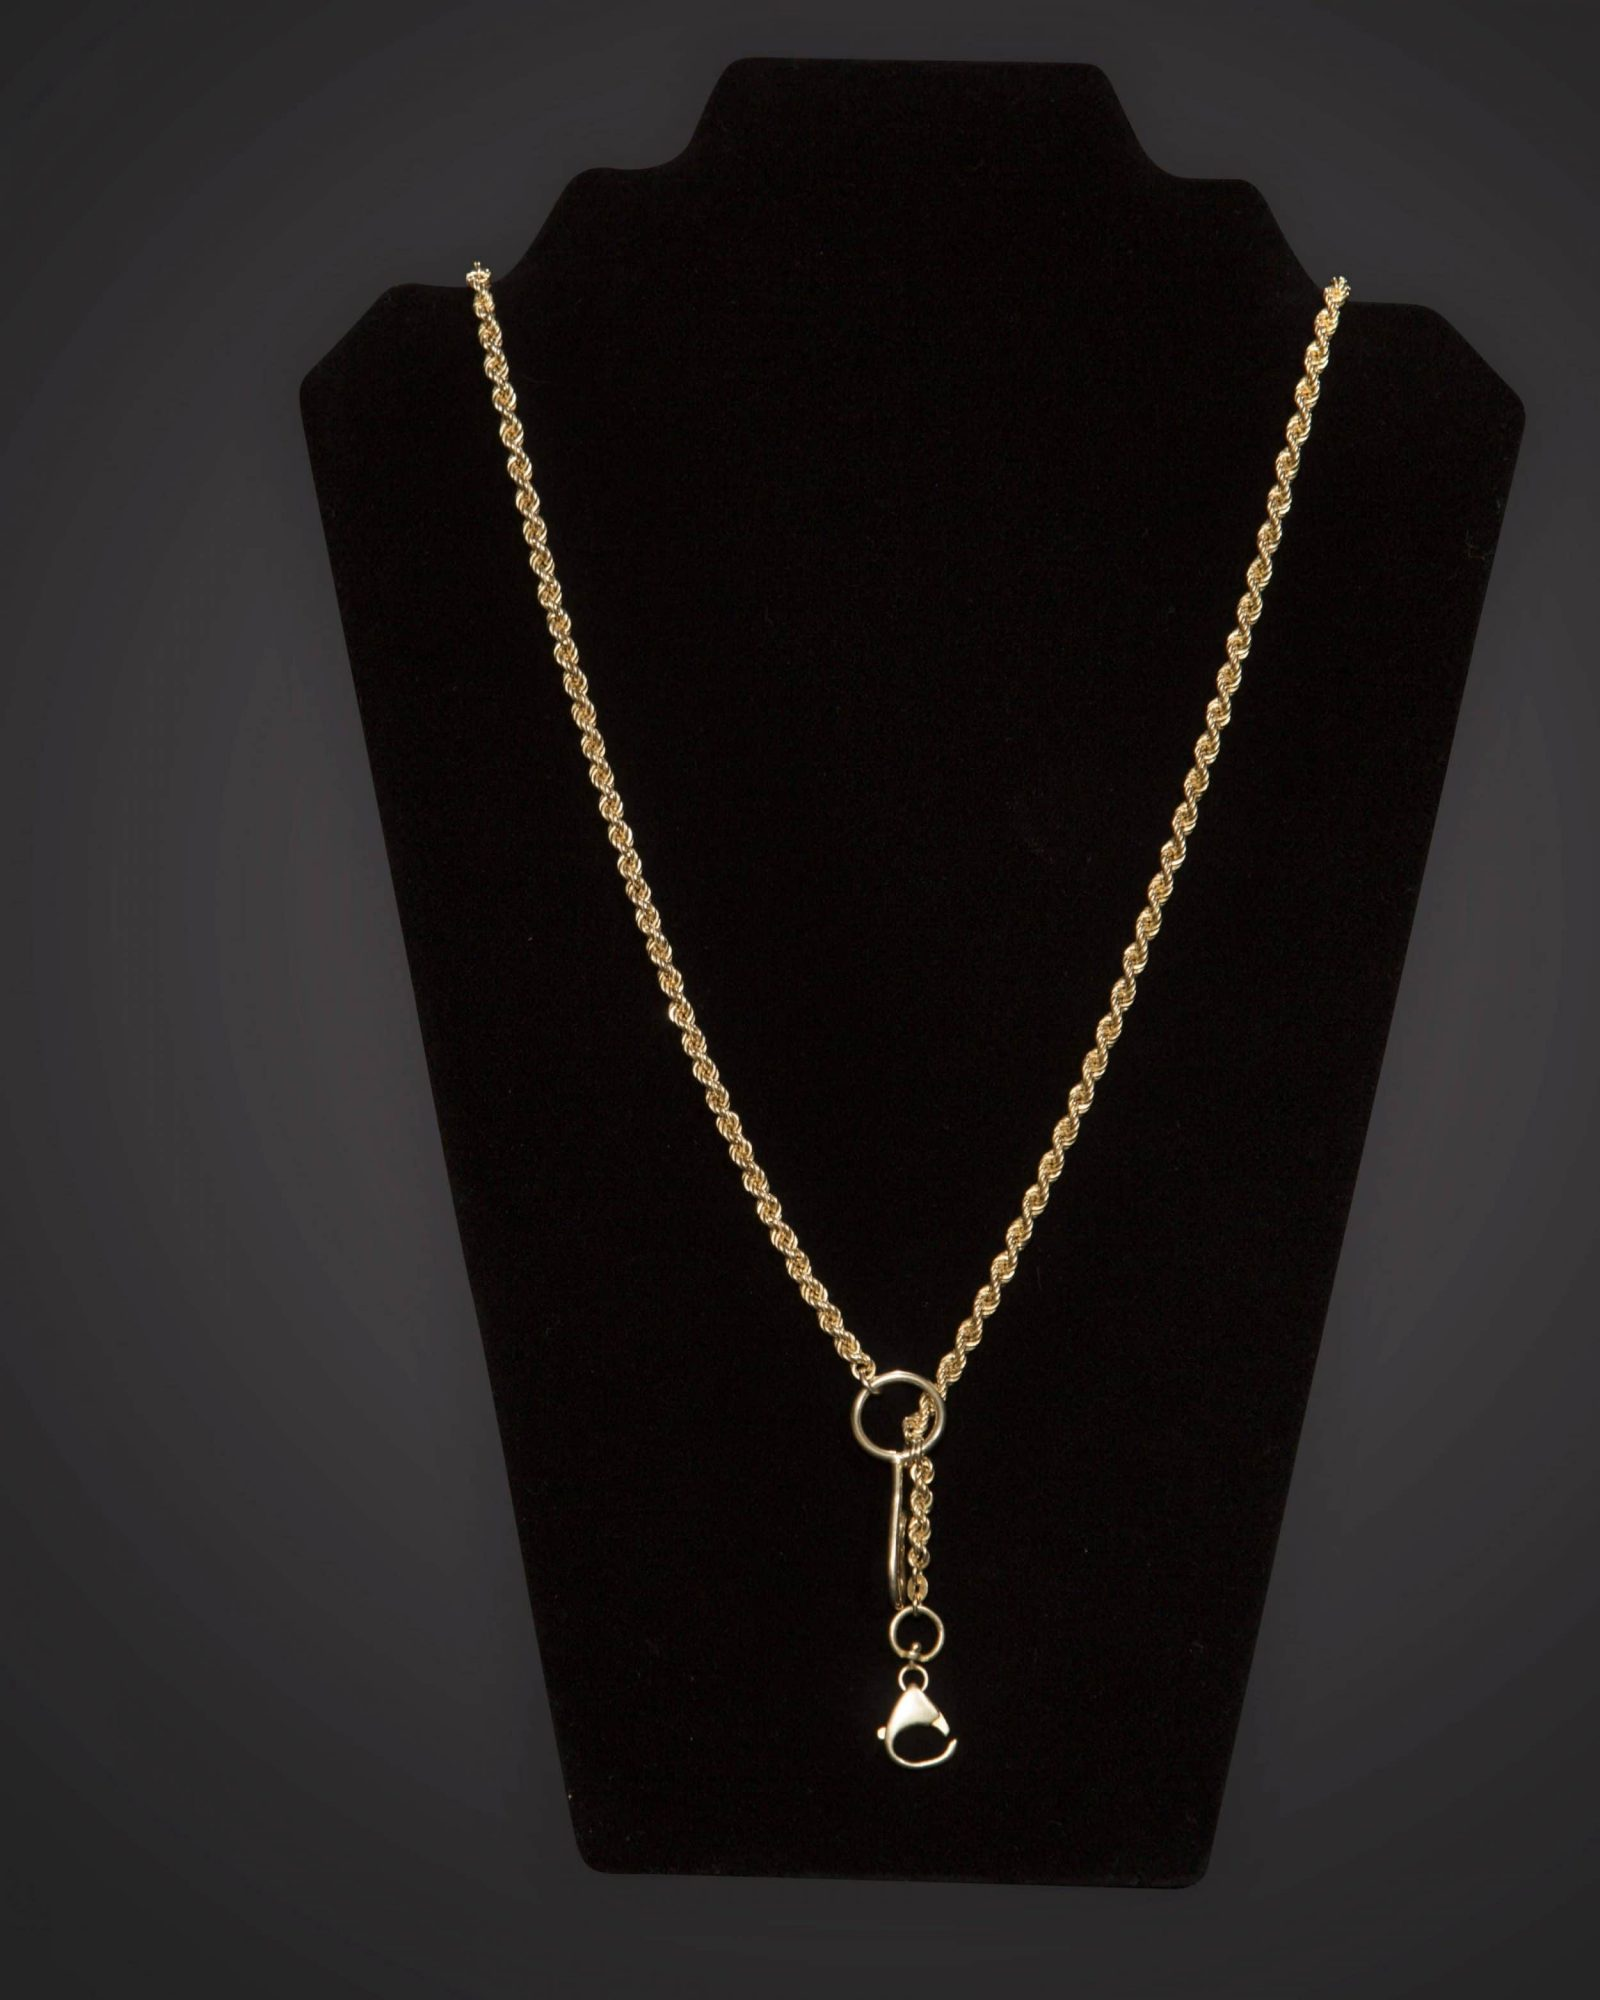 Pectoral Chain - Braided - Long - Gold Plated